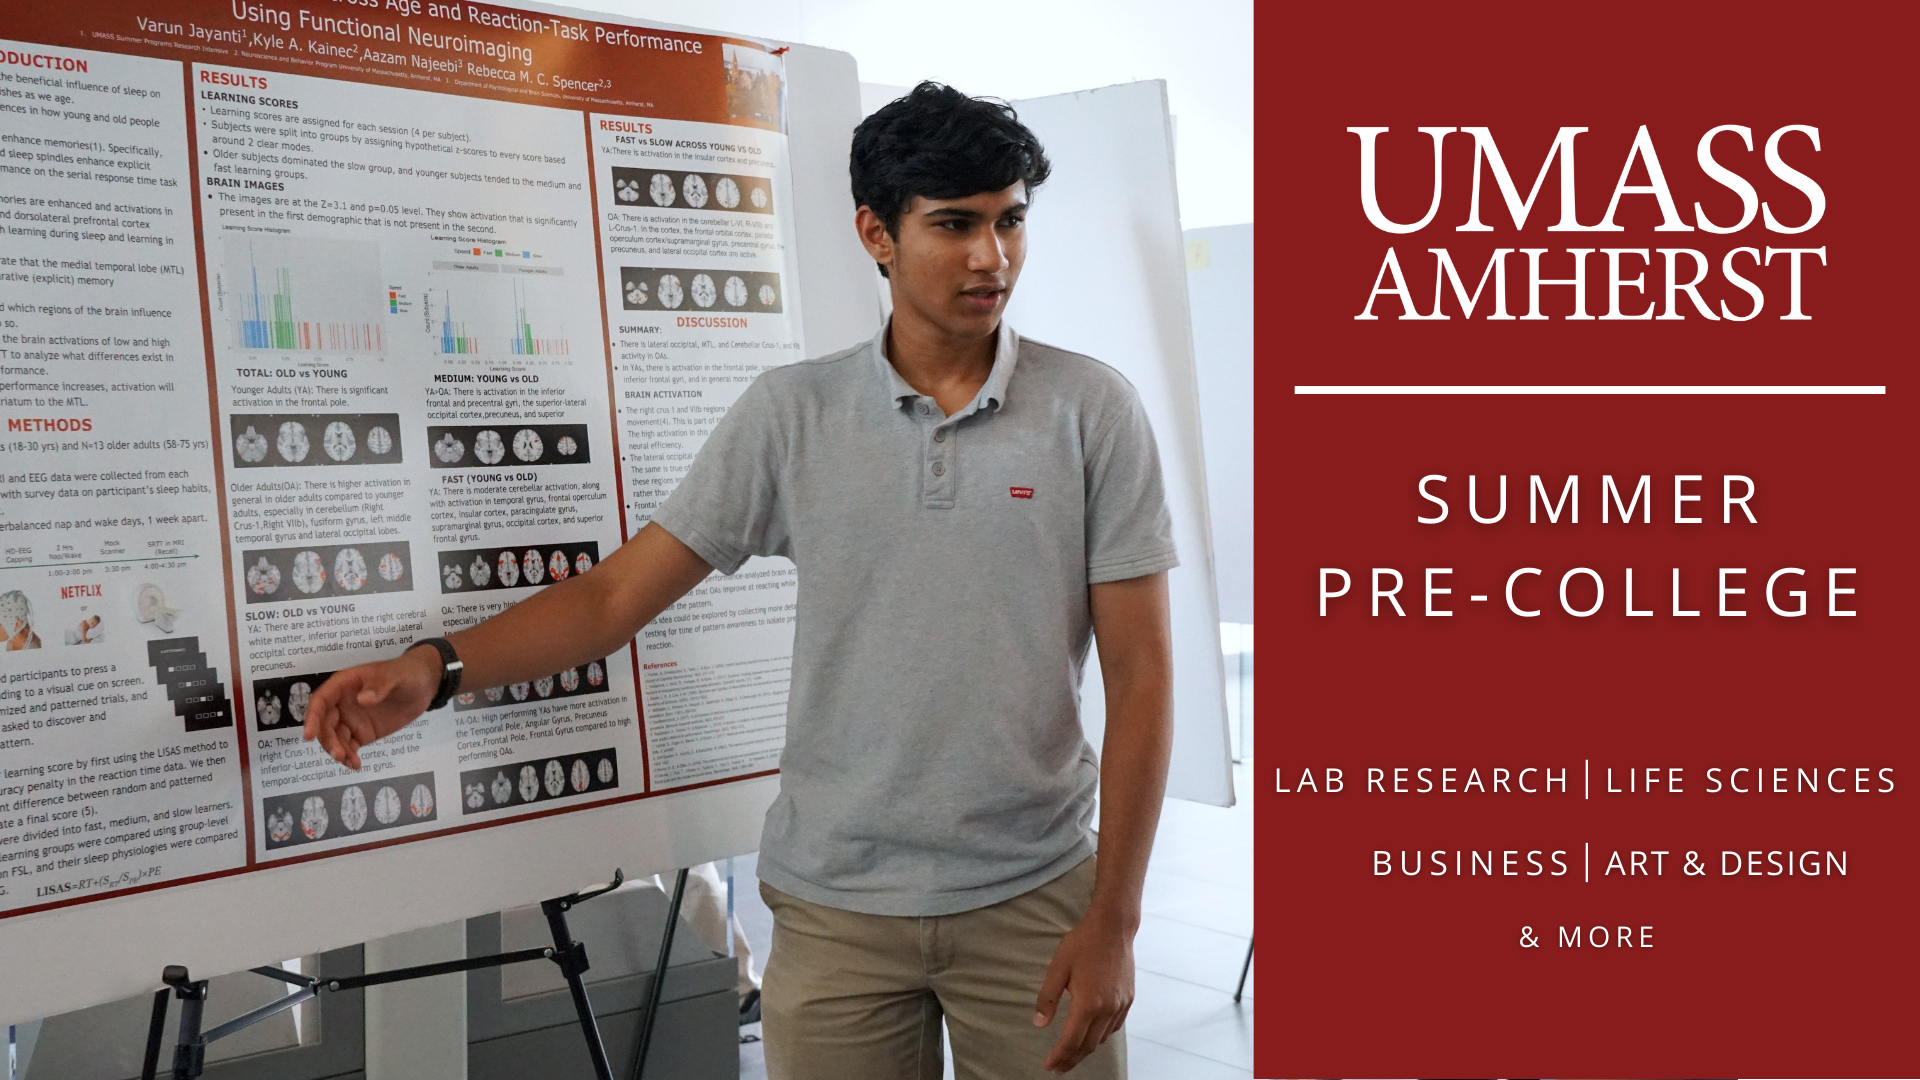 UMass Amherst Summer Pre-College: Creative Coding and Data Visualization